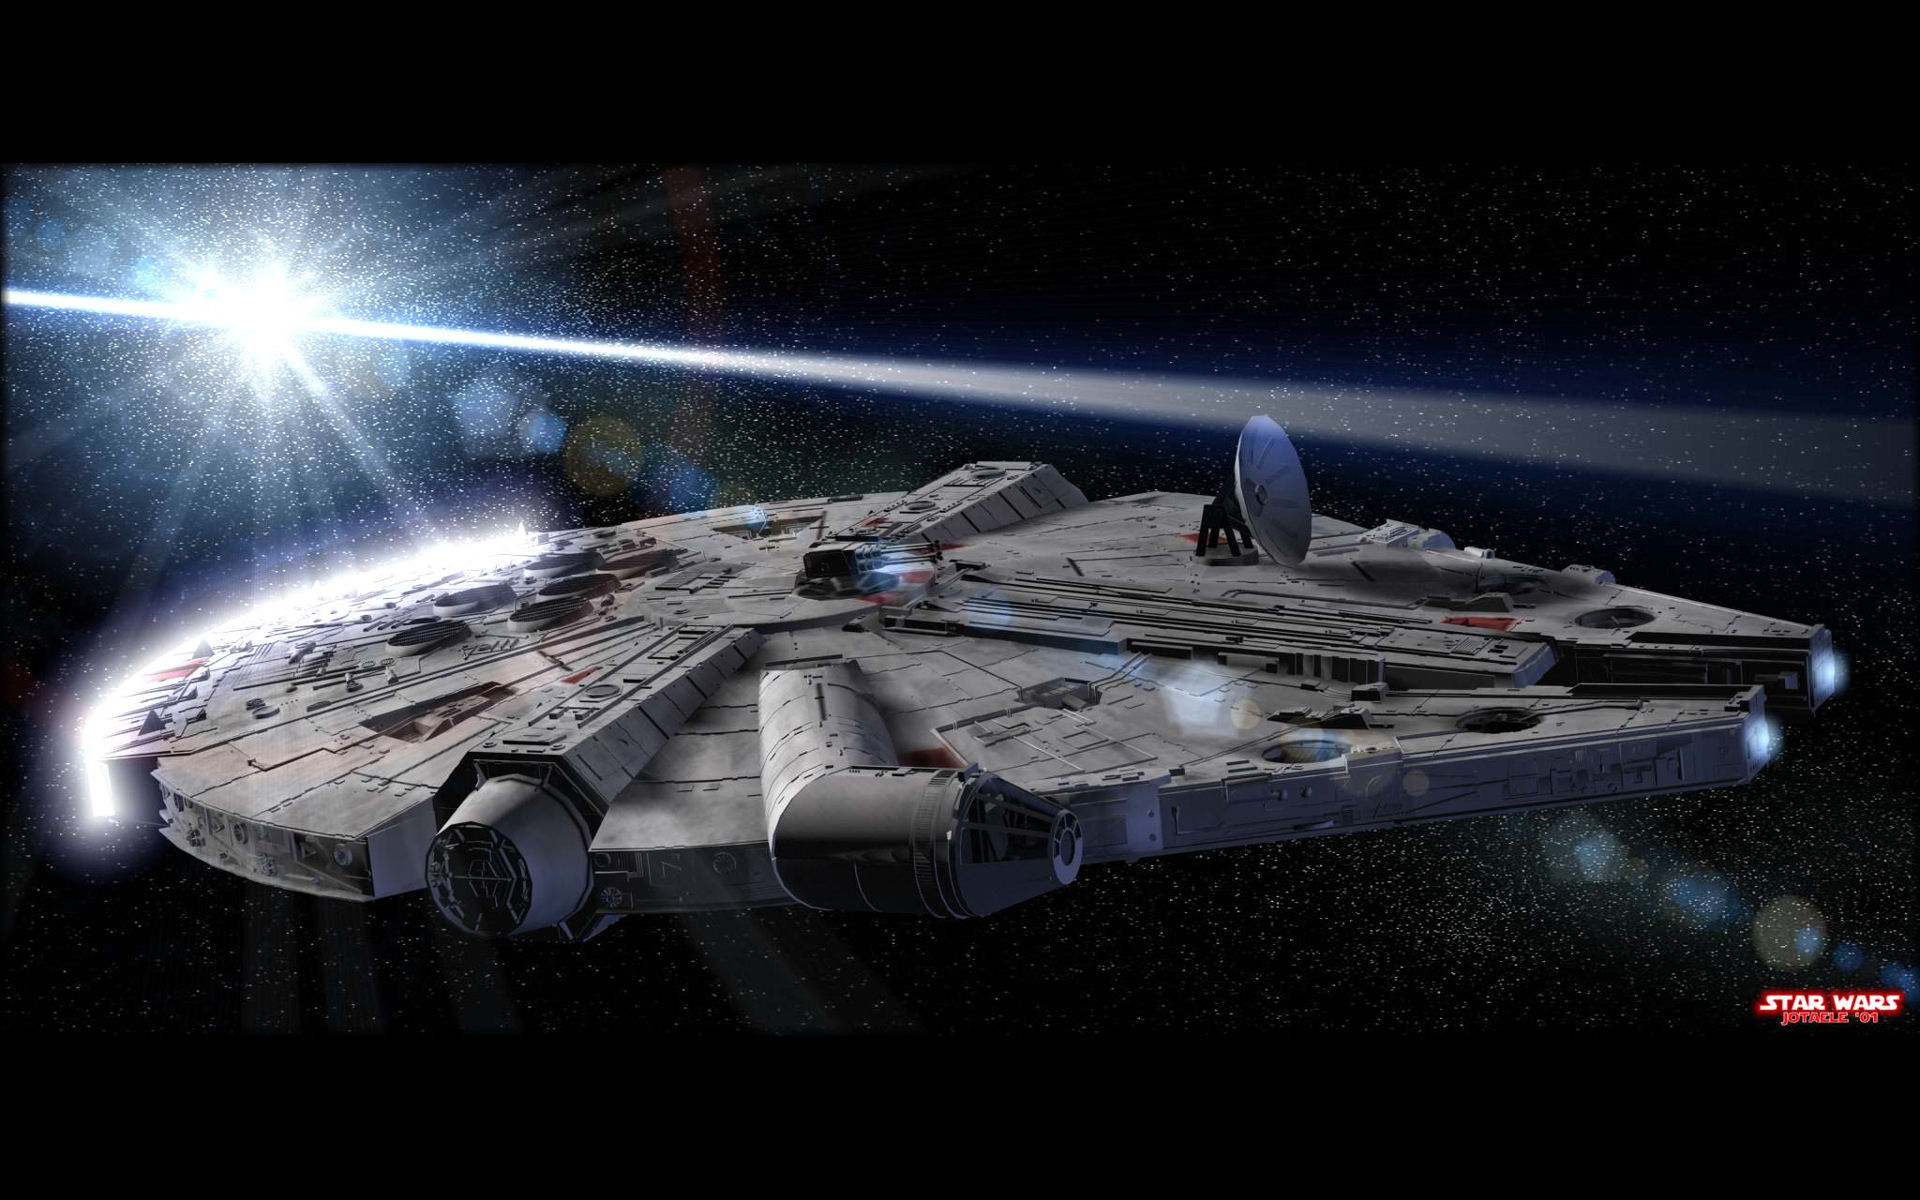 Star Wars Wallpaper Set 5 Awesome Wallpapers 1920x1200